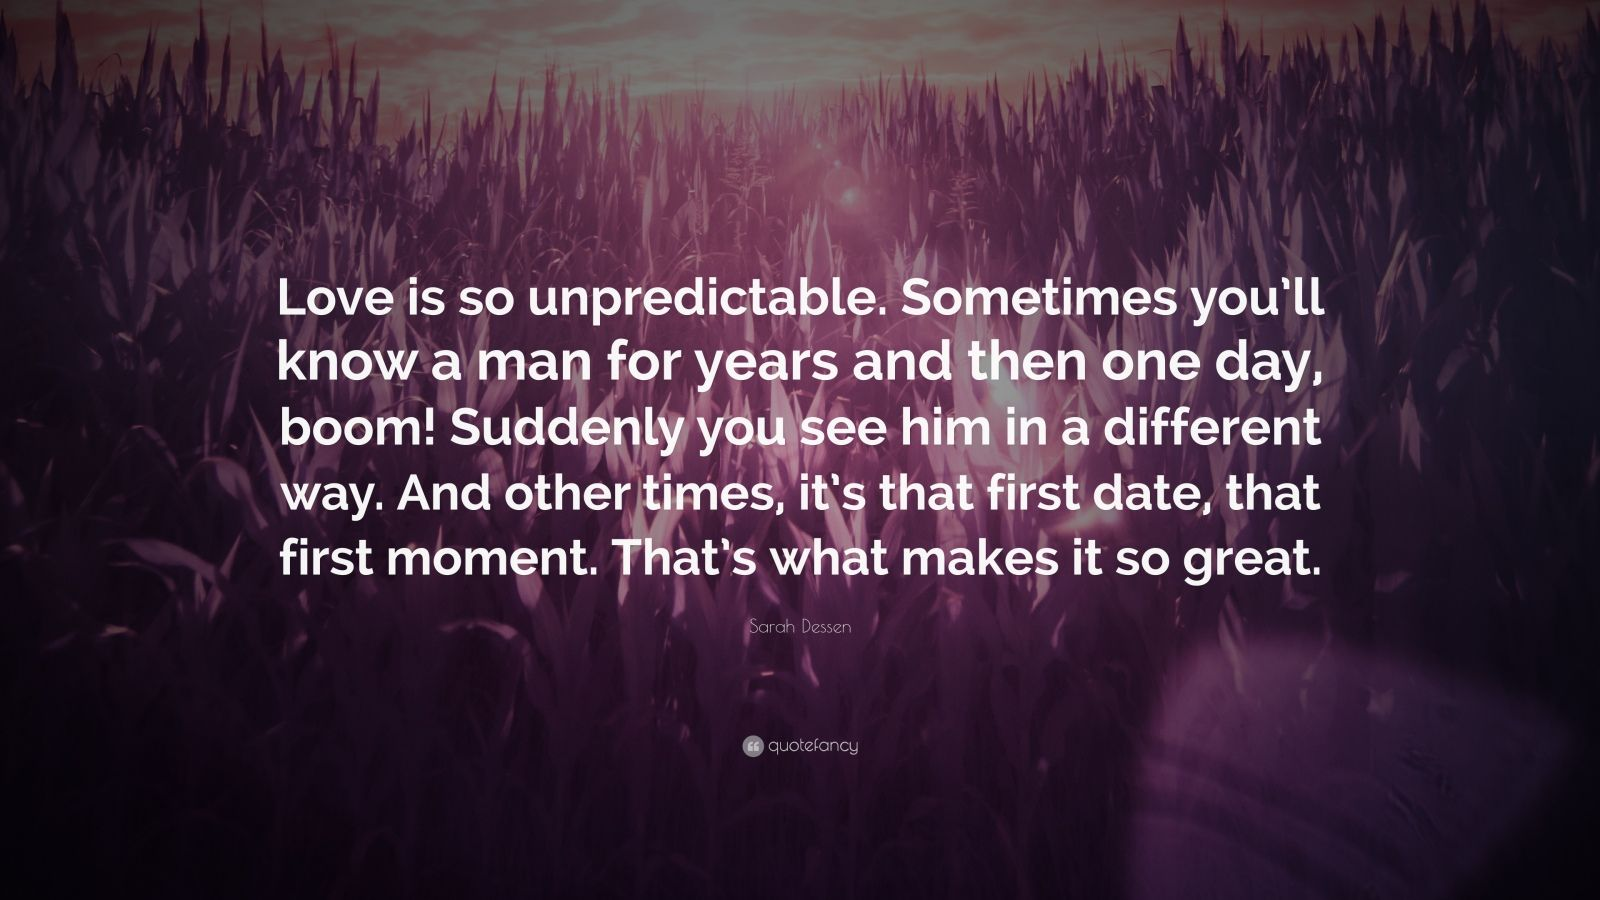 "Sarah Dessen Quote: ""Love is so unpredictable. Sometimes you'll know a man for years and then one day, boom! Suddenly you see him in a different way. And other times, it's that first date, that first moment. That's what makes it so great."""